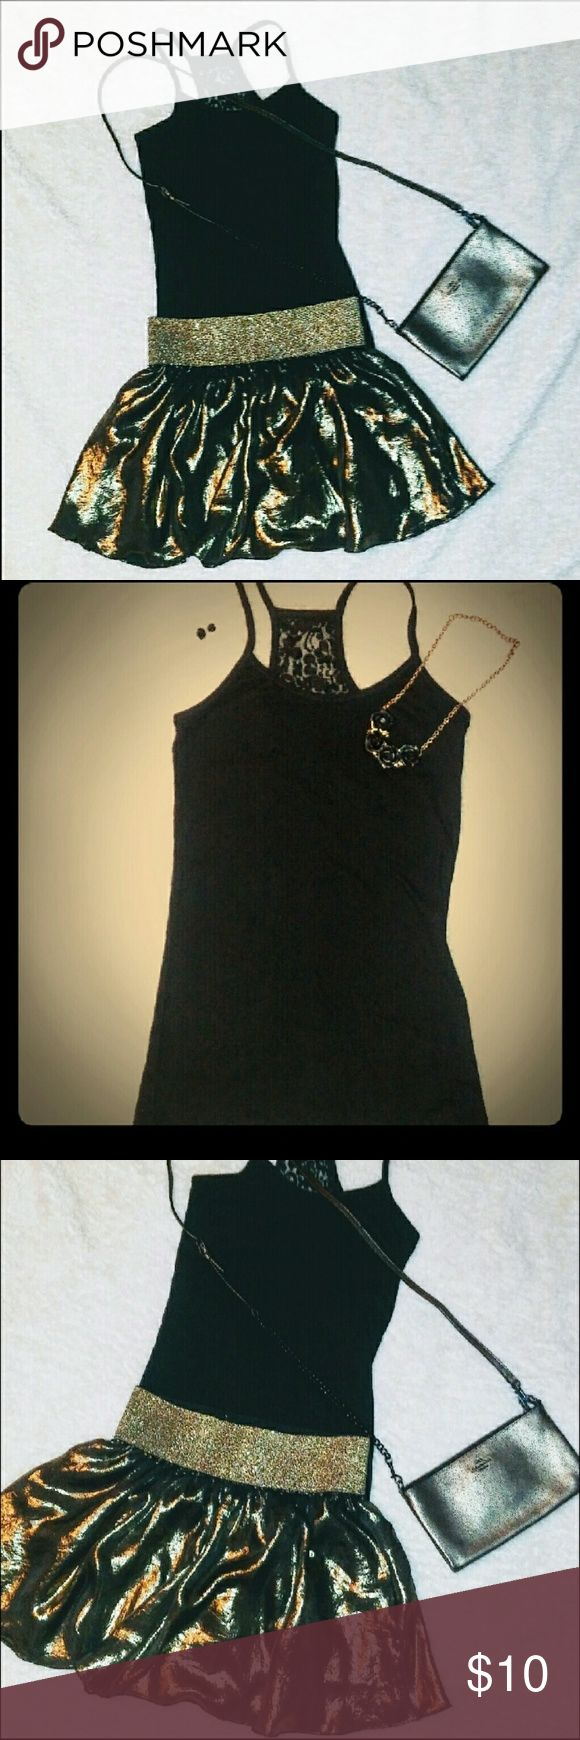 Outfit Bundle Forever 21 gold mini skirt and black racerback tank with lace detailing on back. Both are size small and both are true to size. Both are in excellent preowned condition. These two pieces are great together and can be styled with many things you already own as well. You could wear the tank with denim and fun heels. Items also sold seperately. See closet for additional pictures. Great value! Free gift with purchase Other